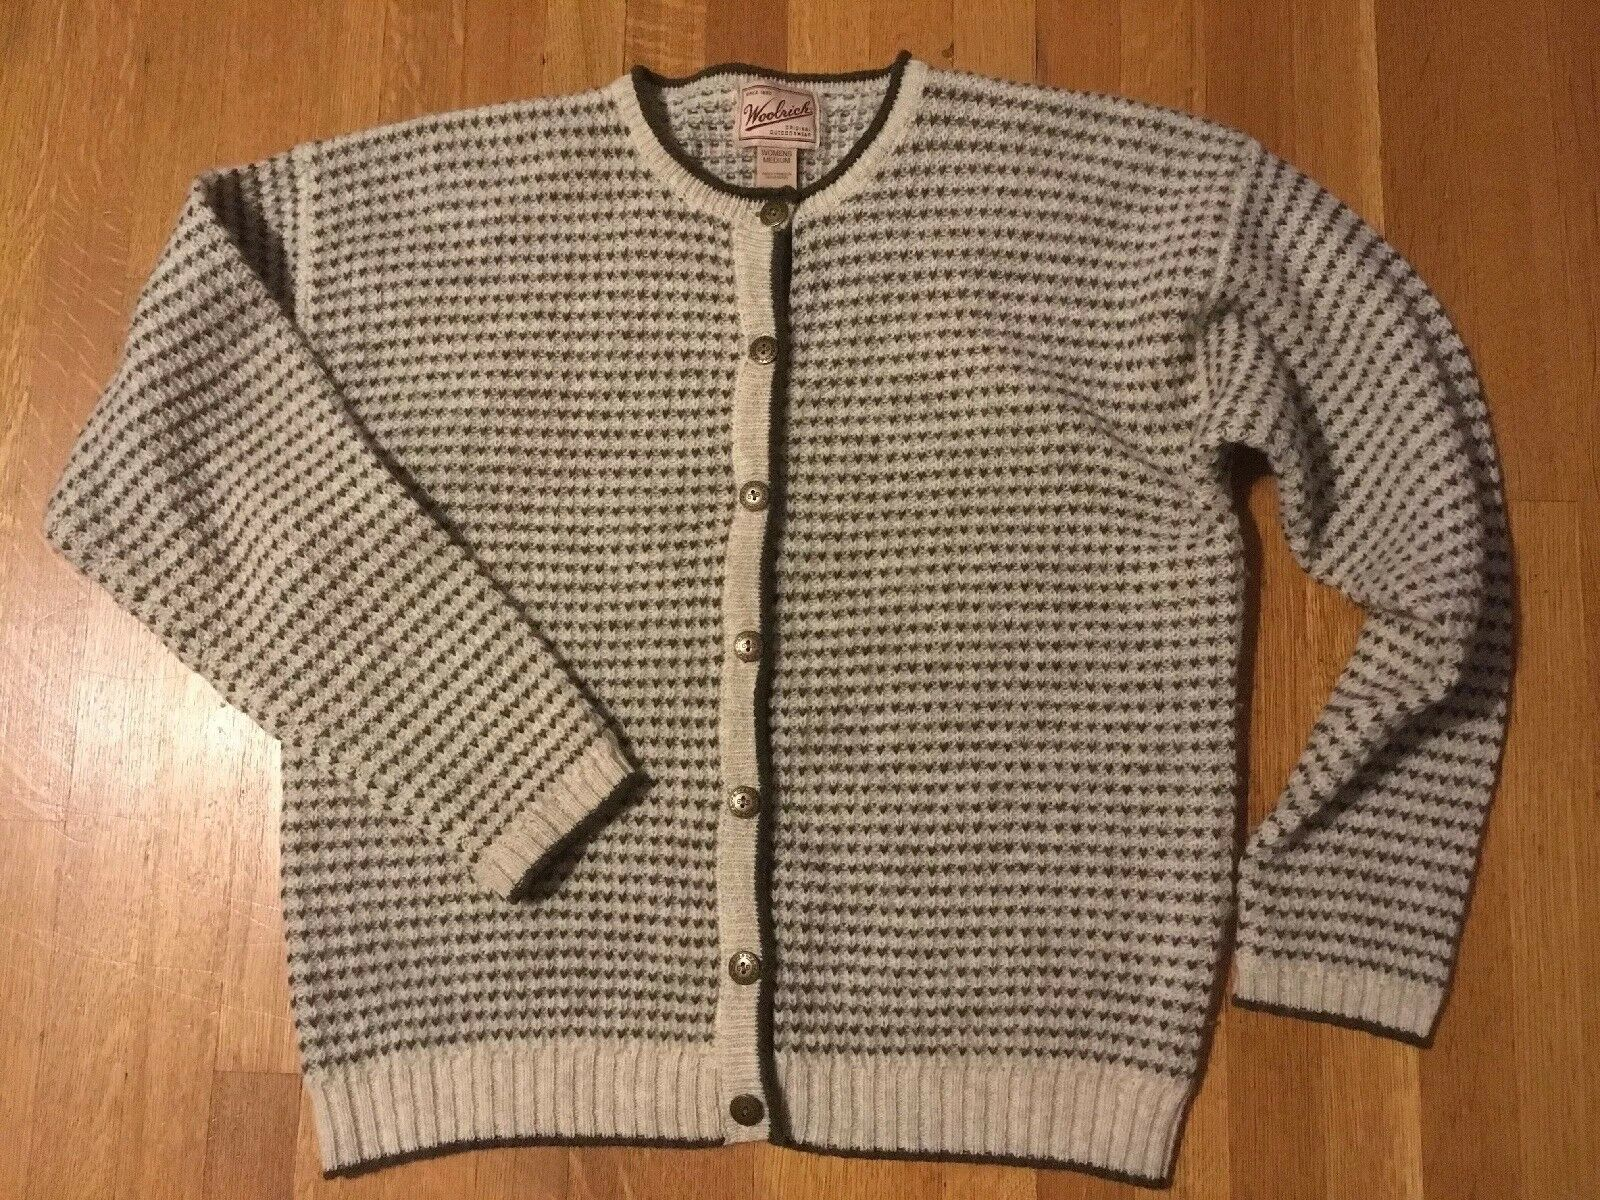 Woolrich 100% Wool Cardigan Sweater Women's Medium Button Up Cream w  Print